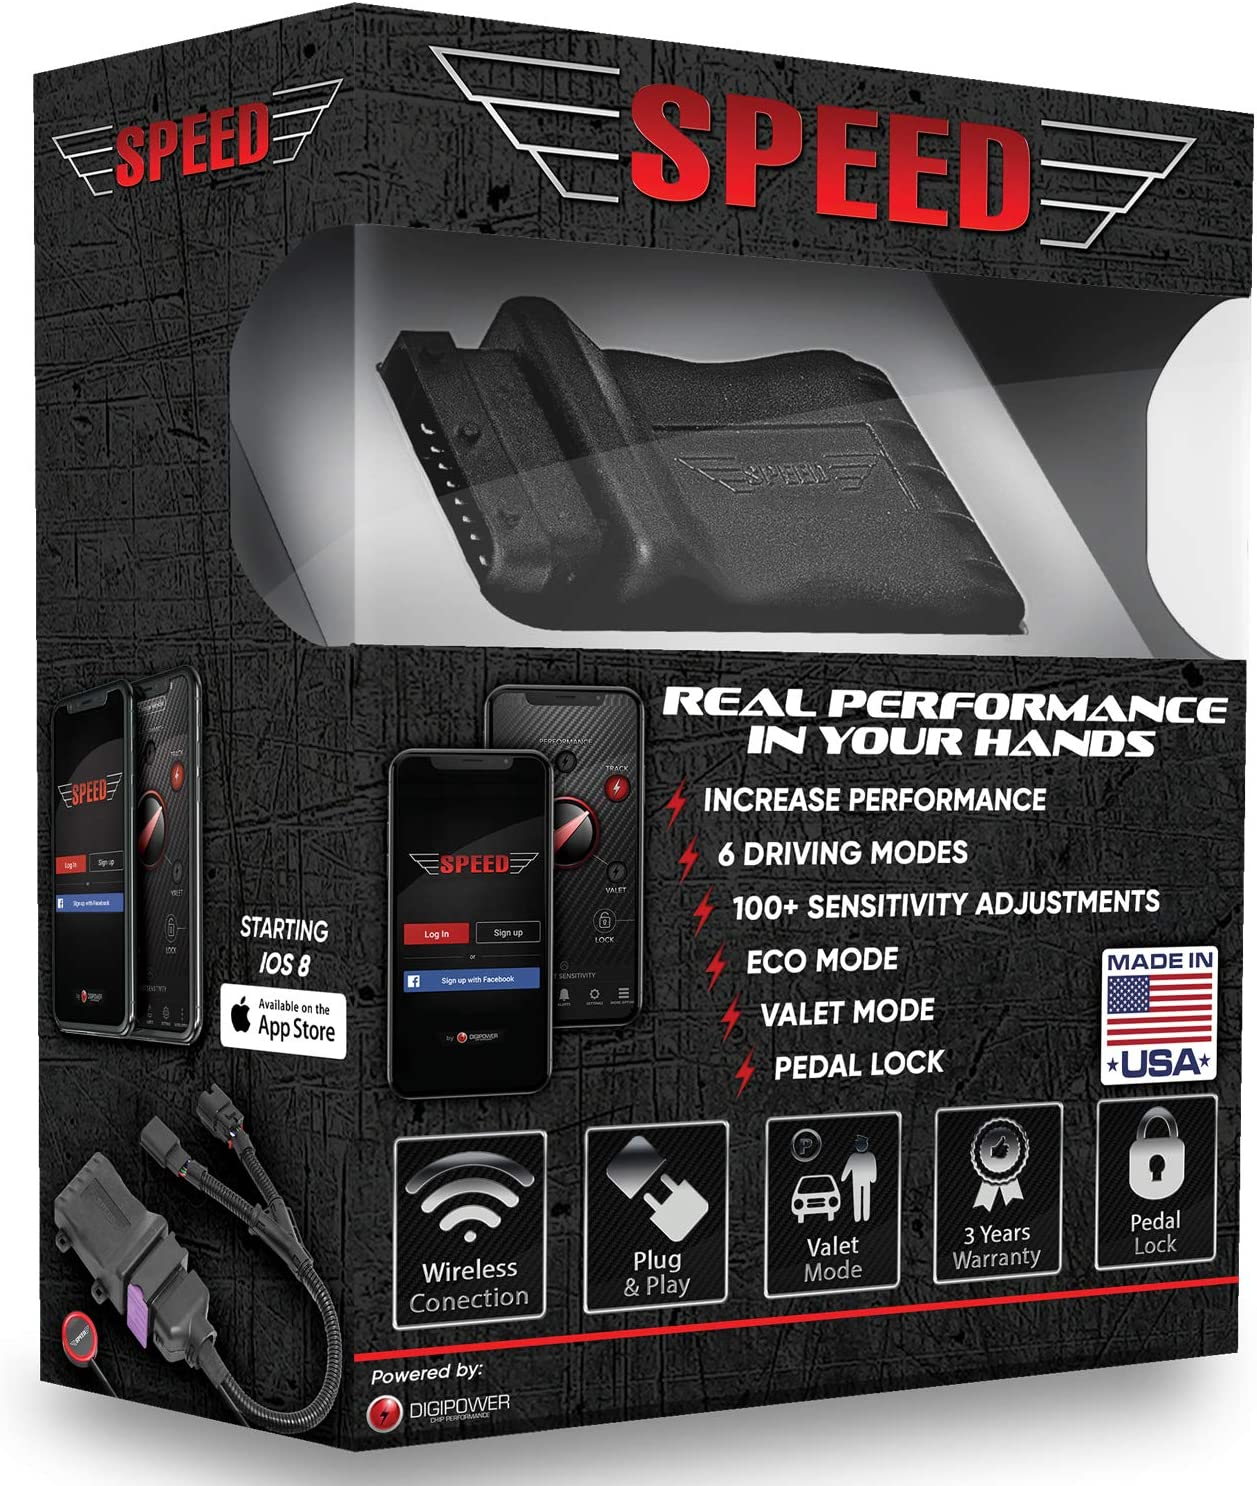 Digipower USA 20095 Speed Bluetooth Throttle Response Controller 2007-2019 Toyota Tundra-Fits All Trim Packages